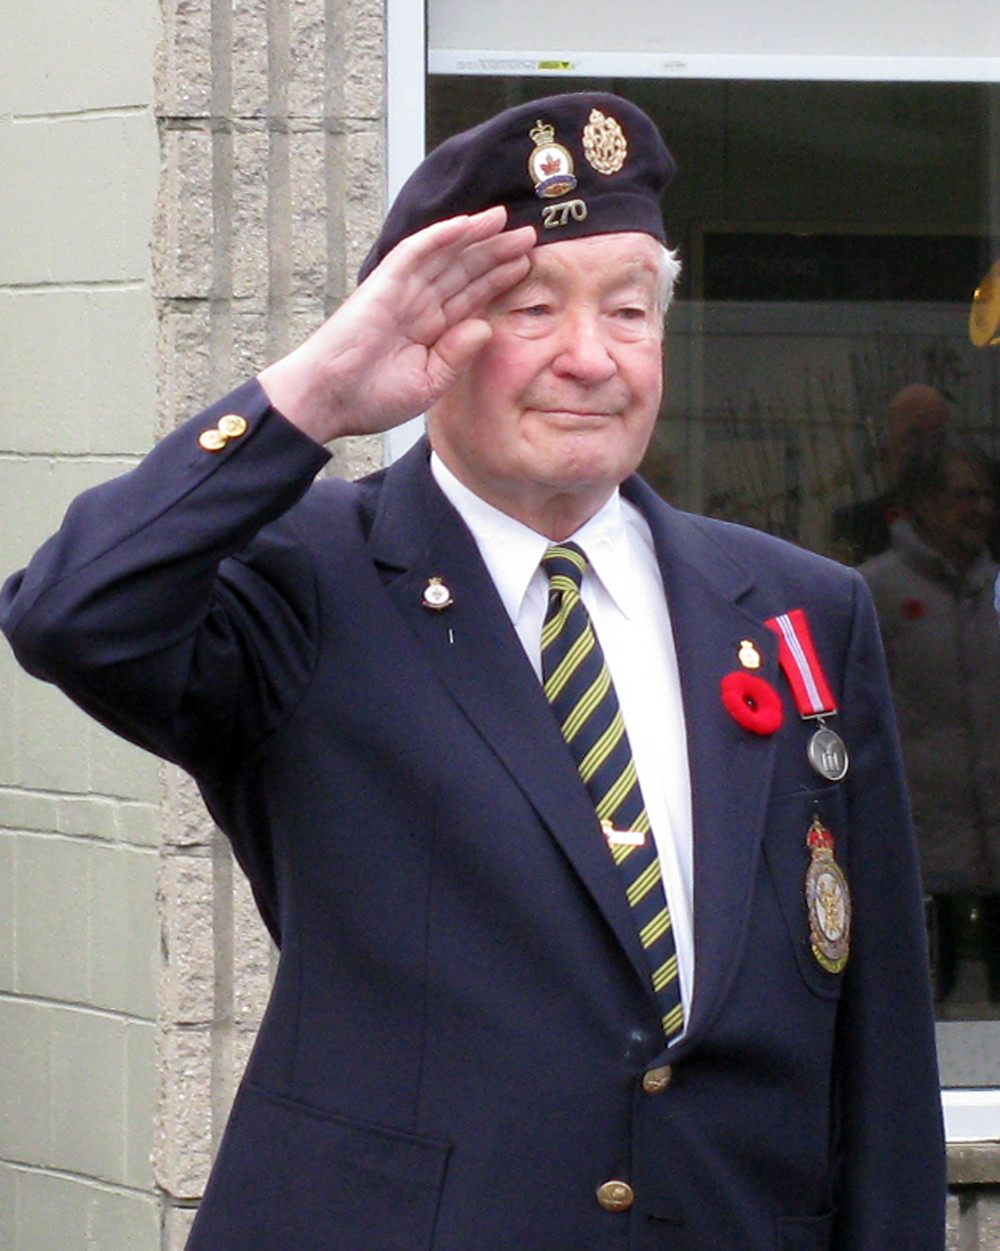 Veteran Bob Rice takes the salute at a Remembrance Day parade in Coldwater.